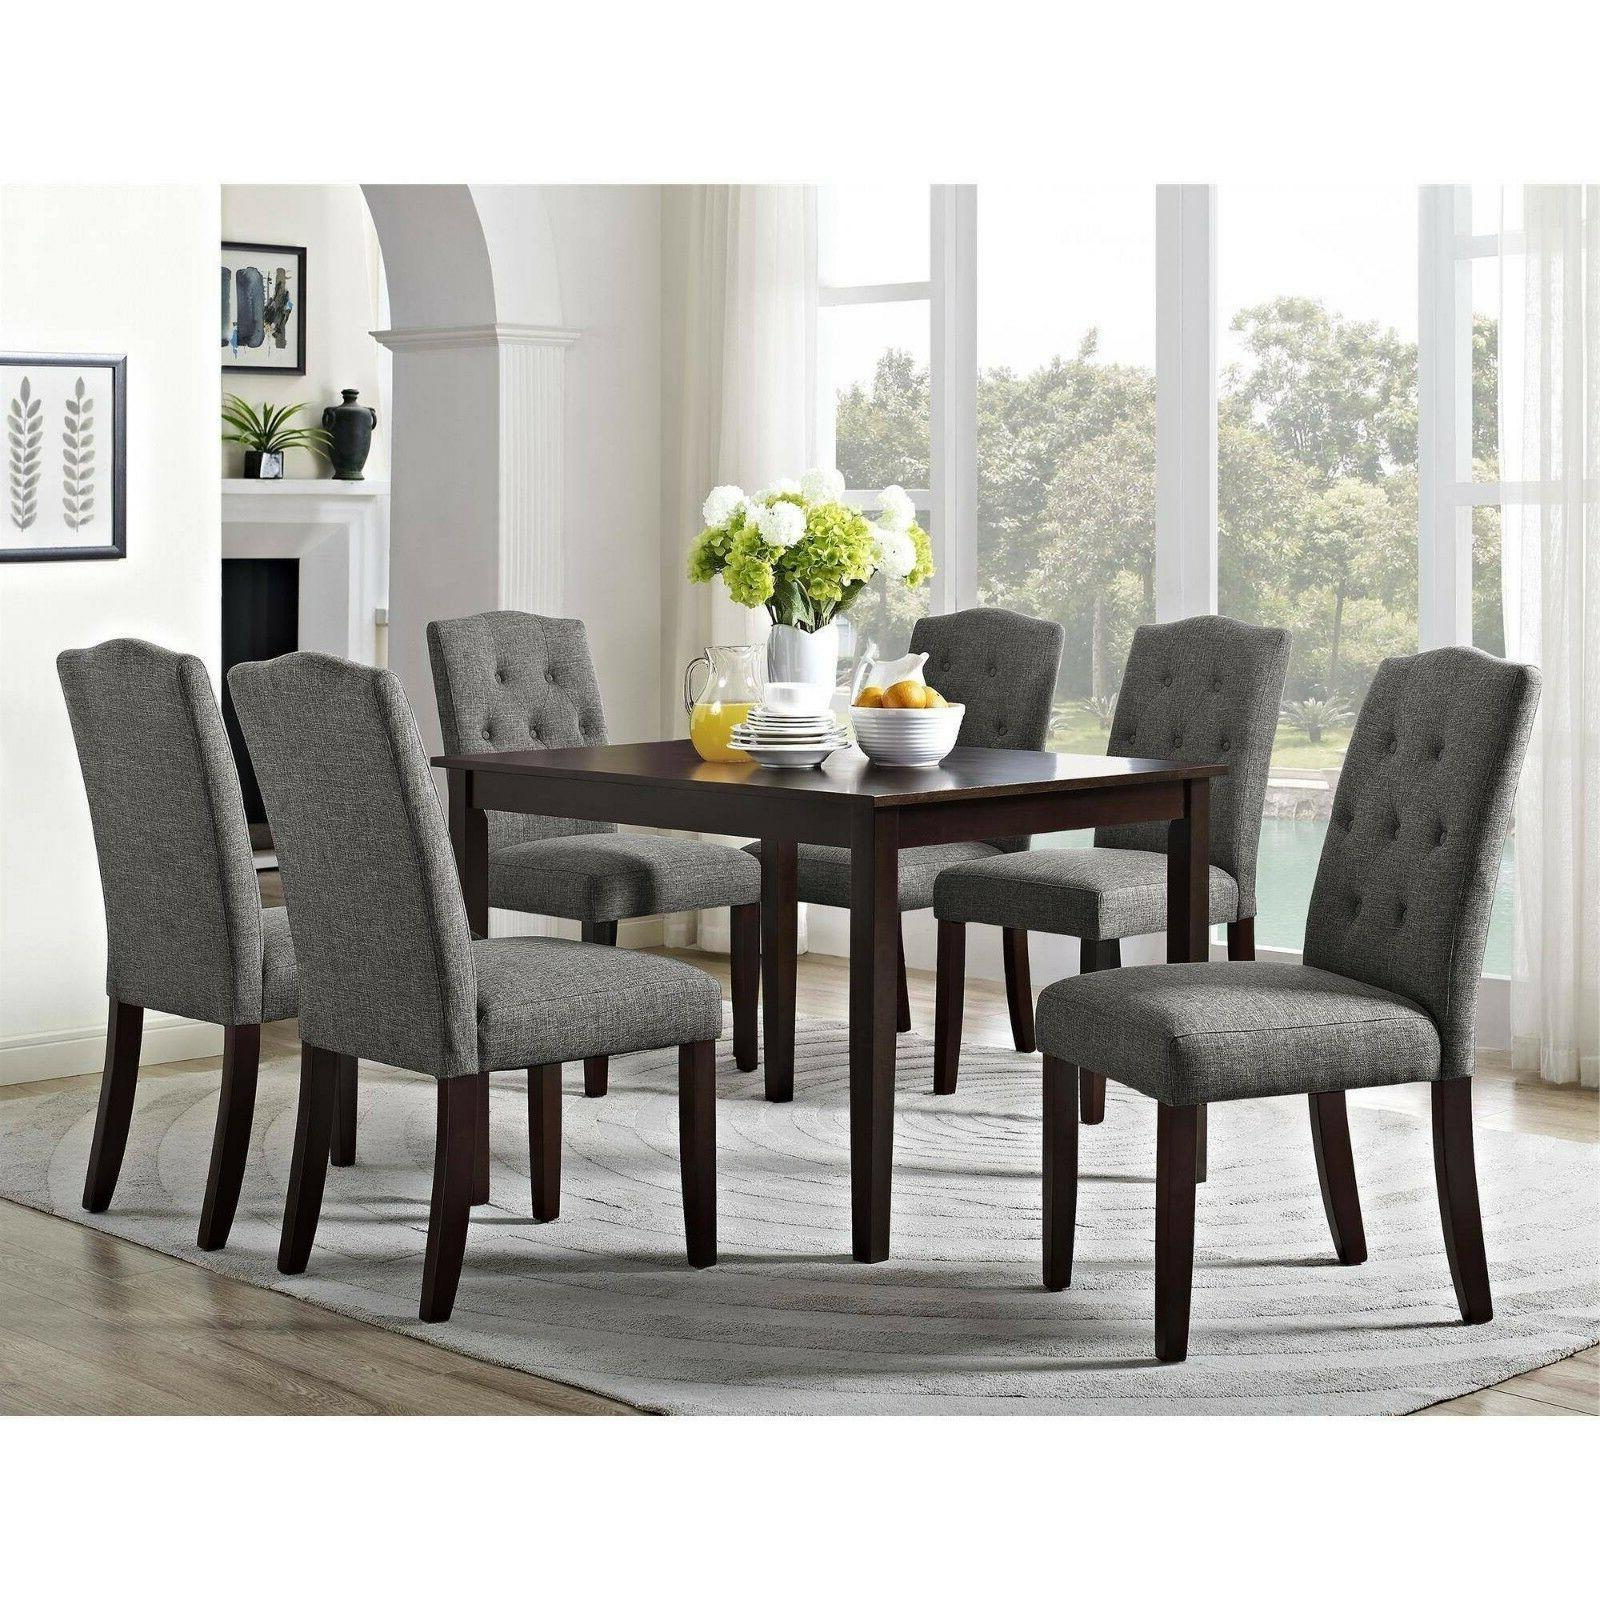 Dining Table Piece Contemporary Living Set